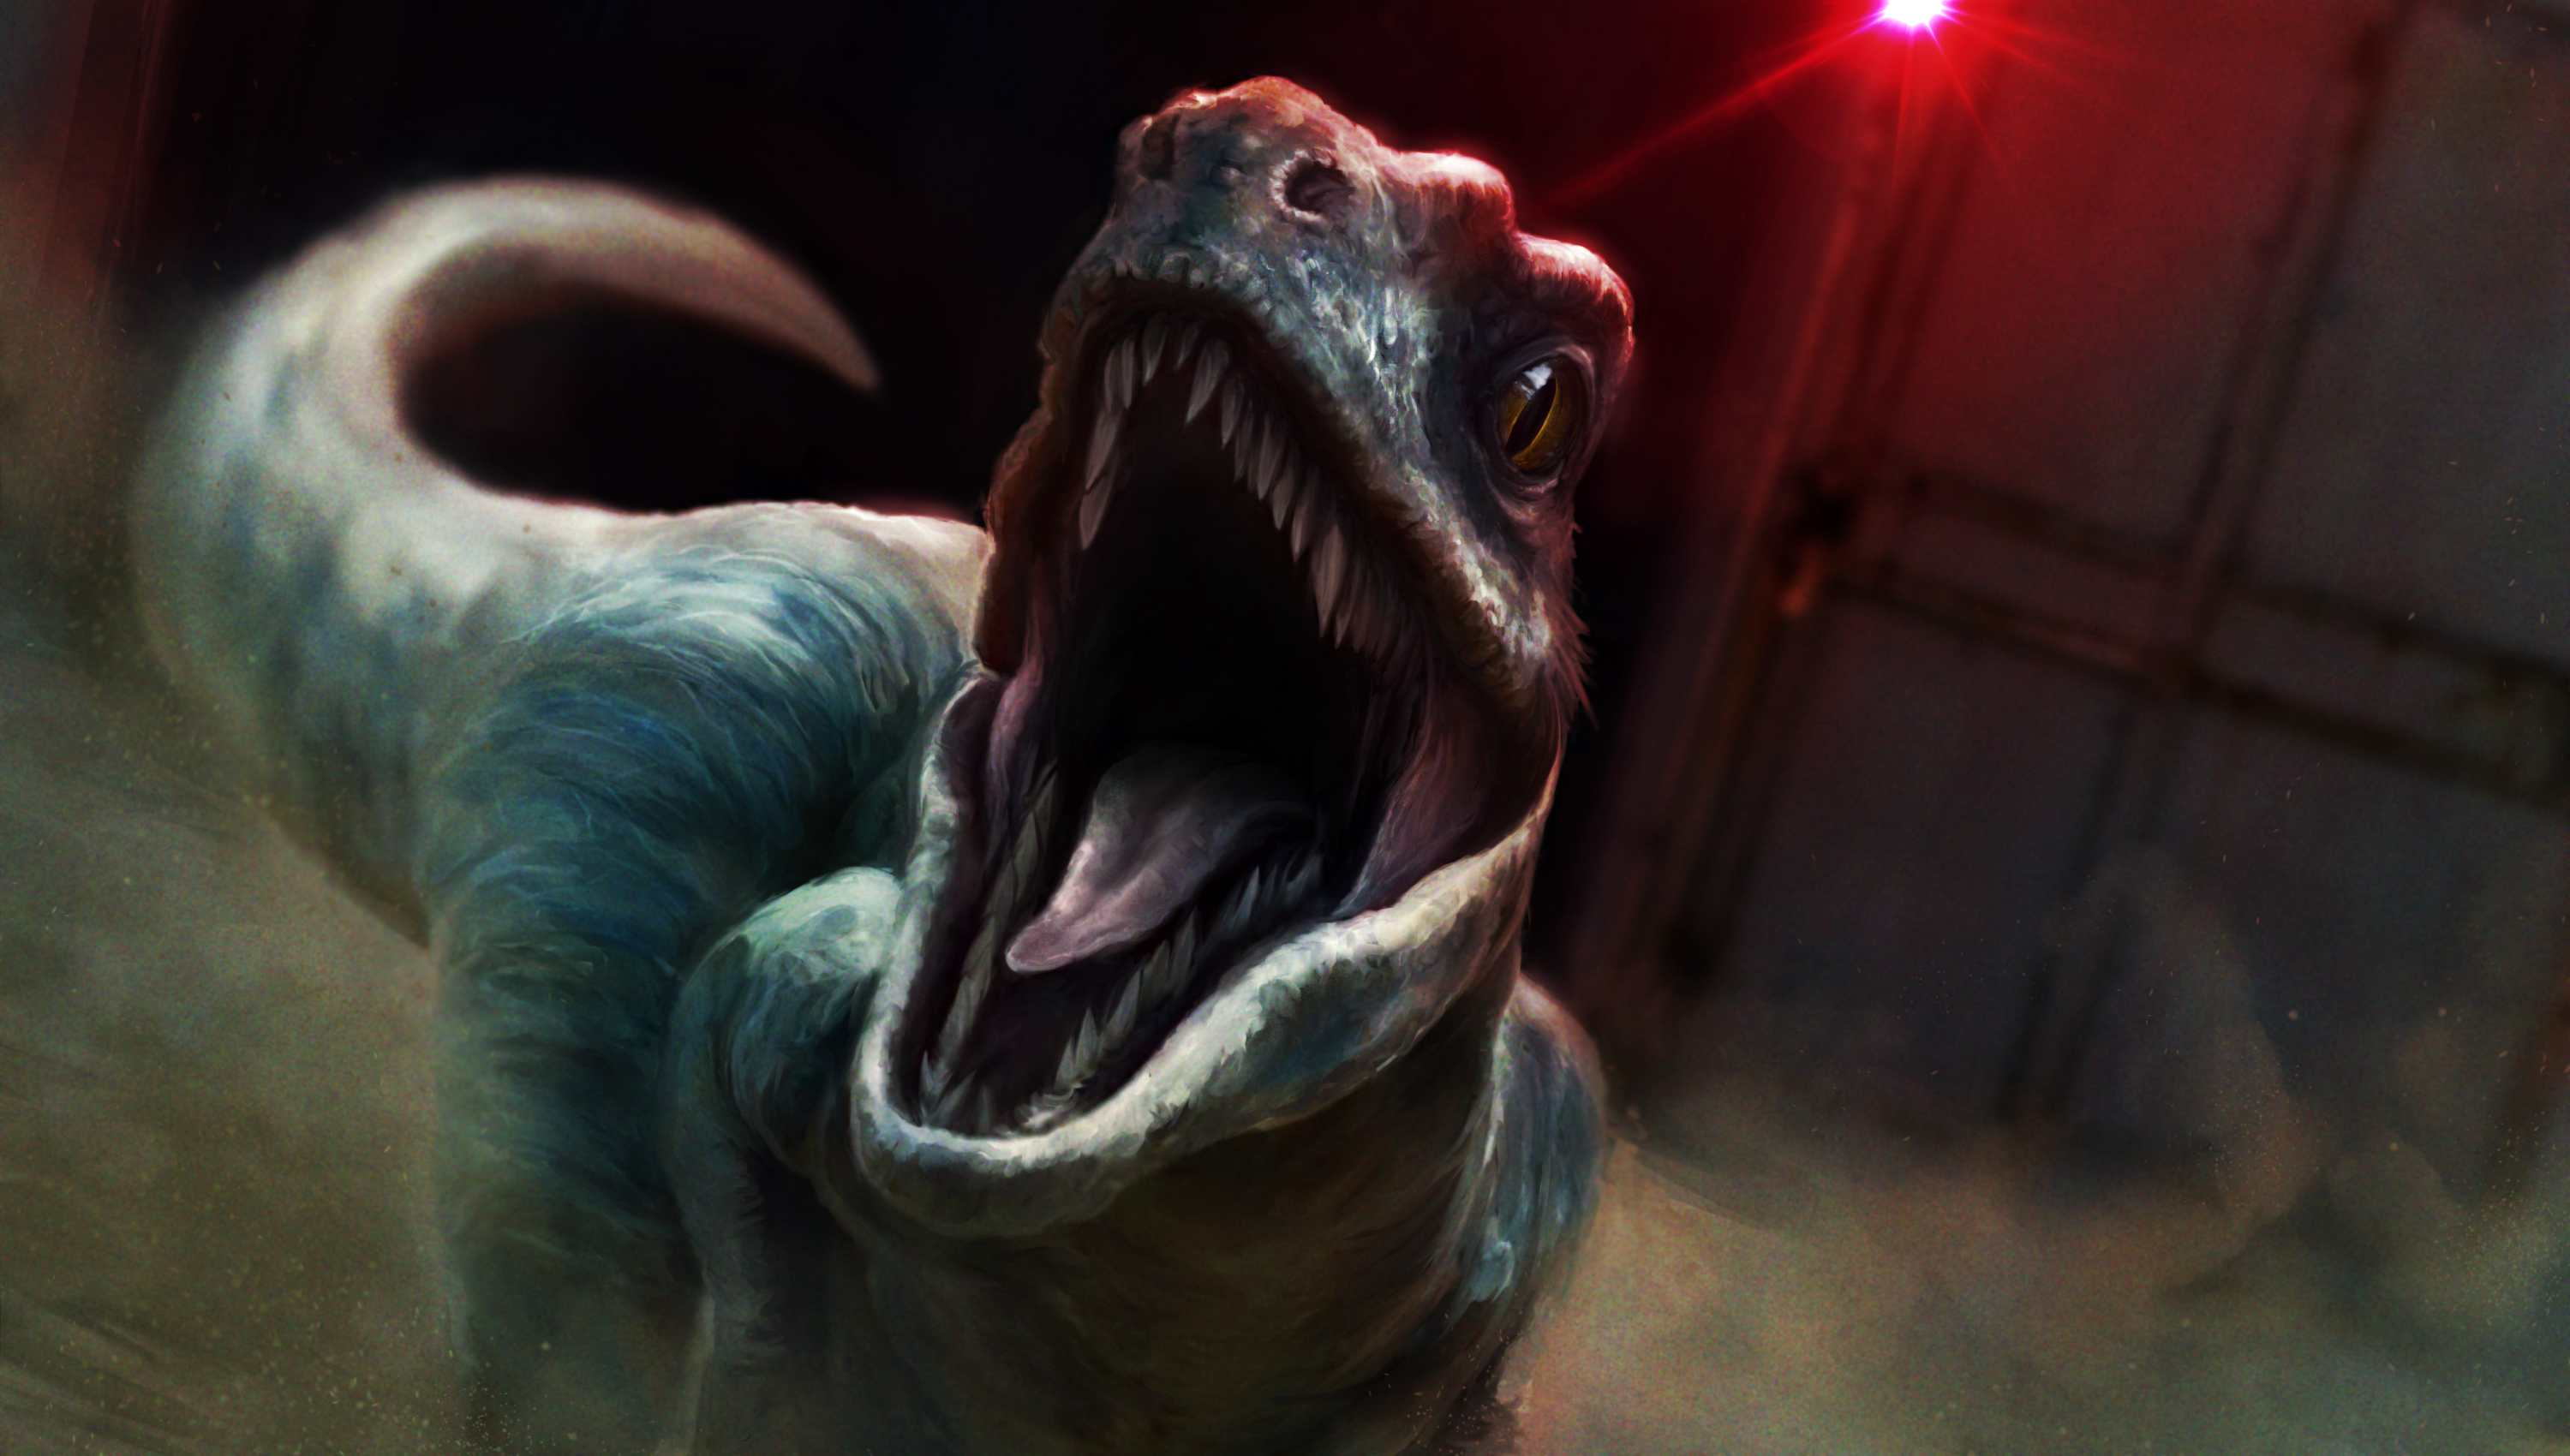 Jurassic World: Velociraptor by BoyGTO